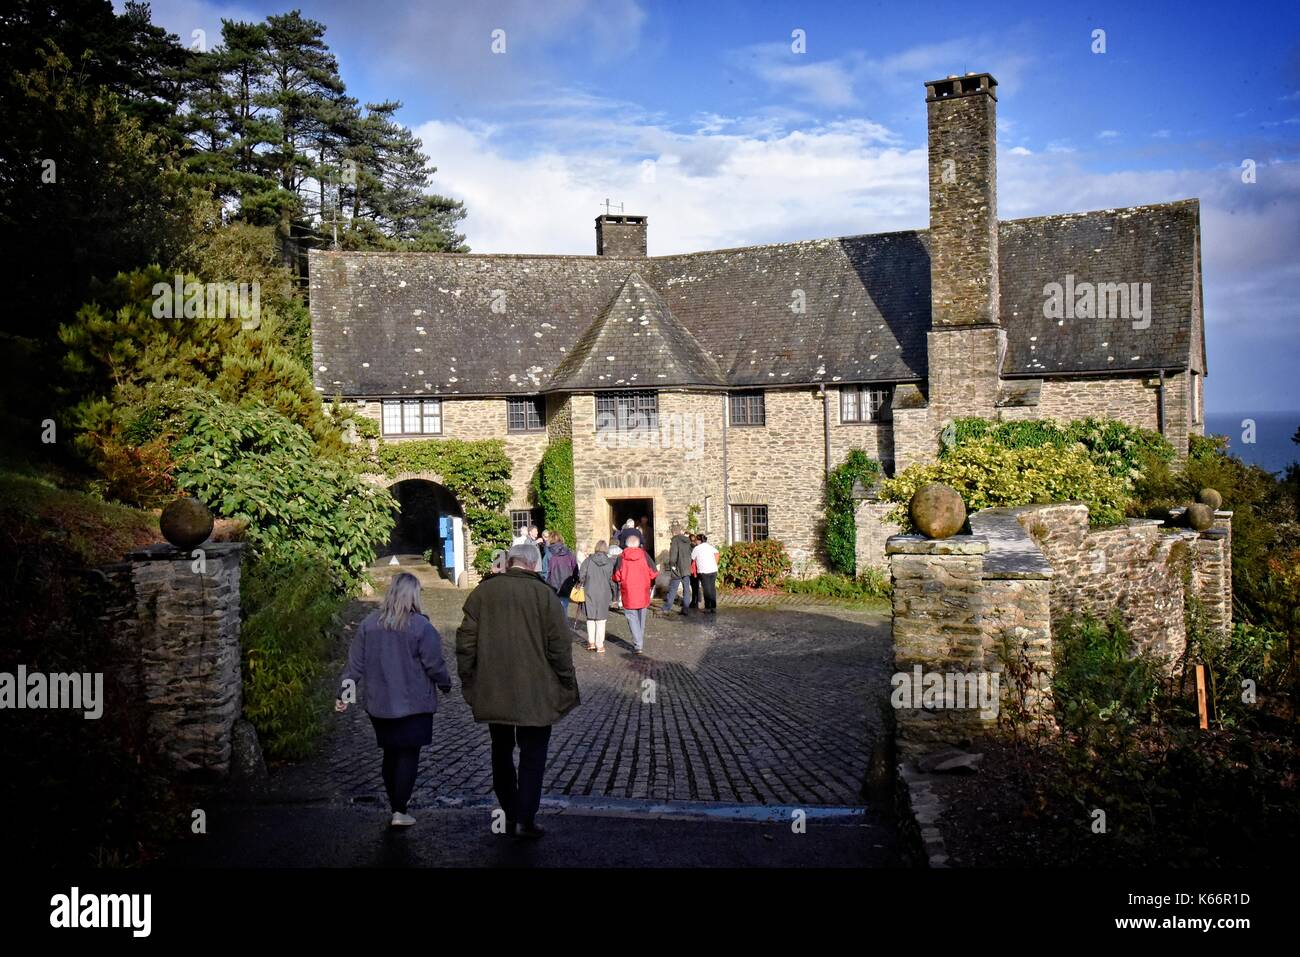 Coleton Fishacre f a 24-acre (97,000 m2) garden and a house in the Arts and Crafts style, Kingswear, Devon, England. Stock Photo